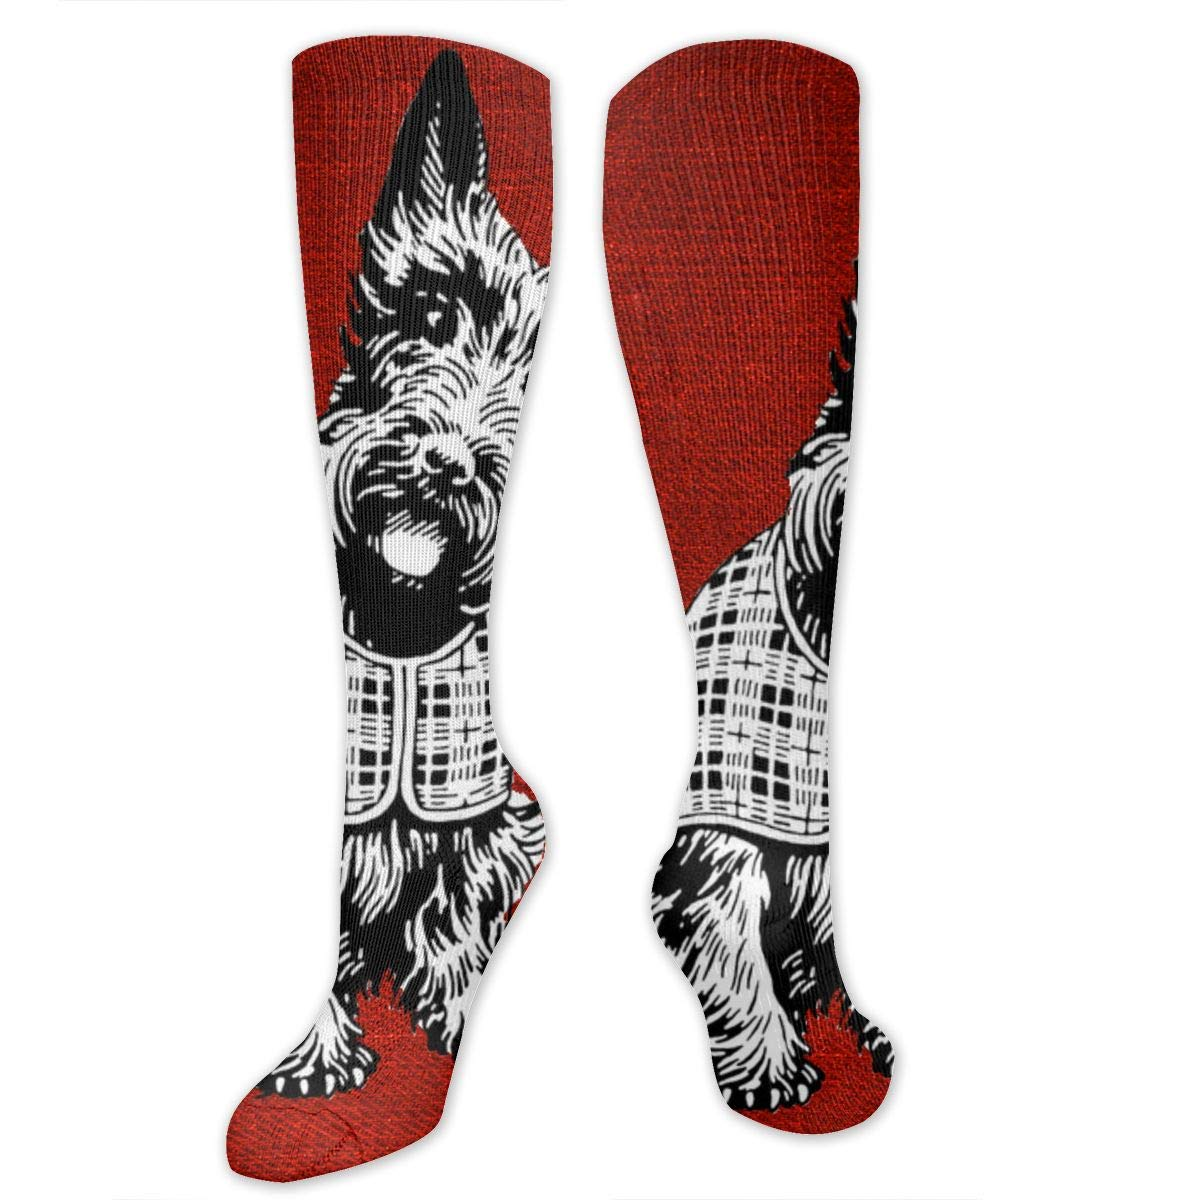 Chanwazibibiliu Innocent Eyes of A Dog On A Red Background Mens Colorful Dress Socks Funky Men Multicolored Pattern Fashionable Fun Crew Cotton Socks